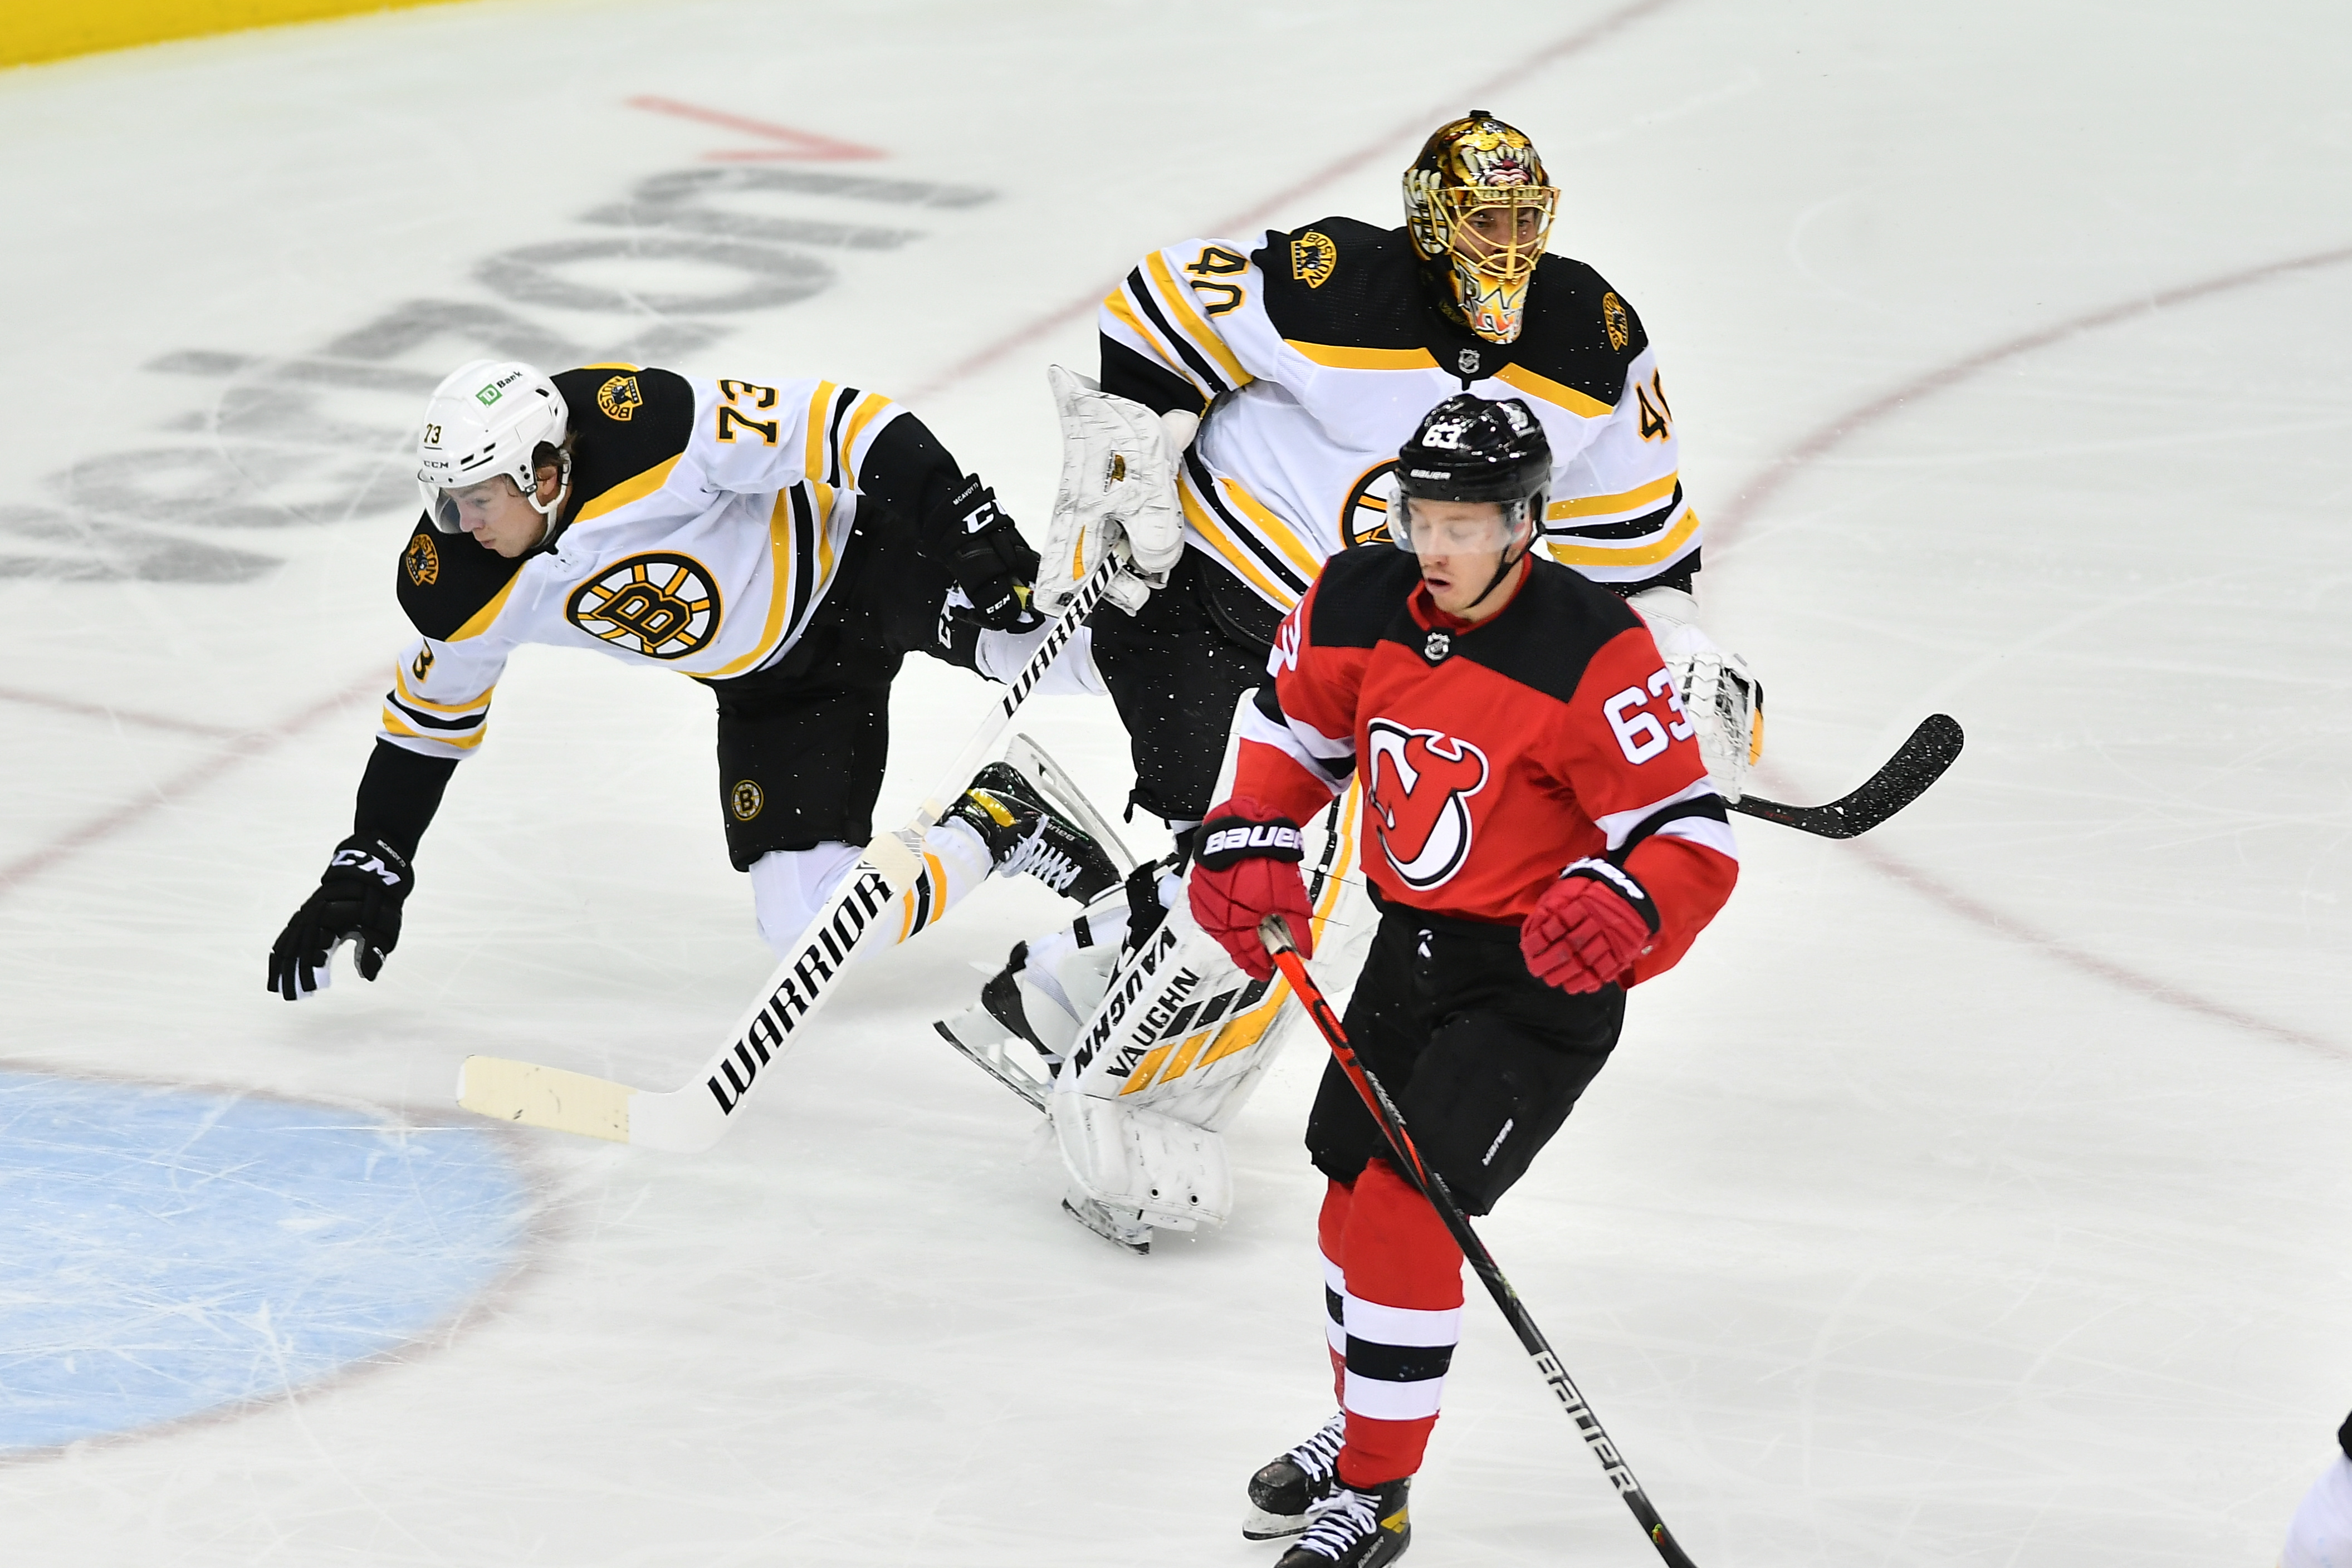 May 3, 2021; Newark, New Jersey, USA; Boston Bruins defenseman Charlie McAvoy (73) collides with Boston Bruins goalie Tuukka Rask (40) during a game against the New Jersey Devils in the first period at Prudential Center. Mandatory Credit: Catalina Fragoso-USA TODAY Sports